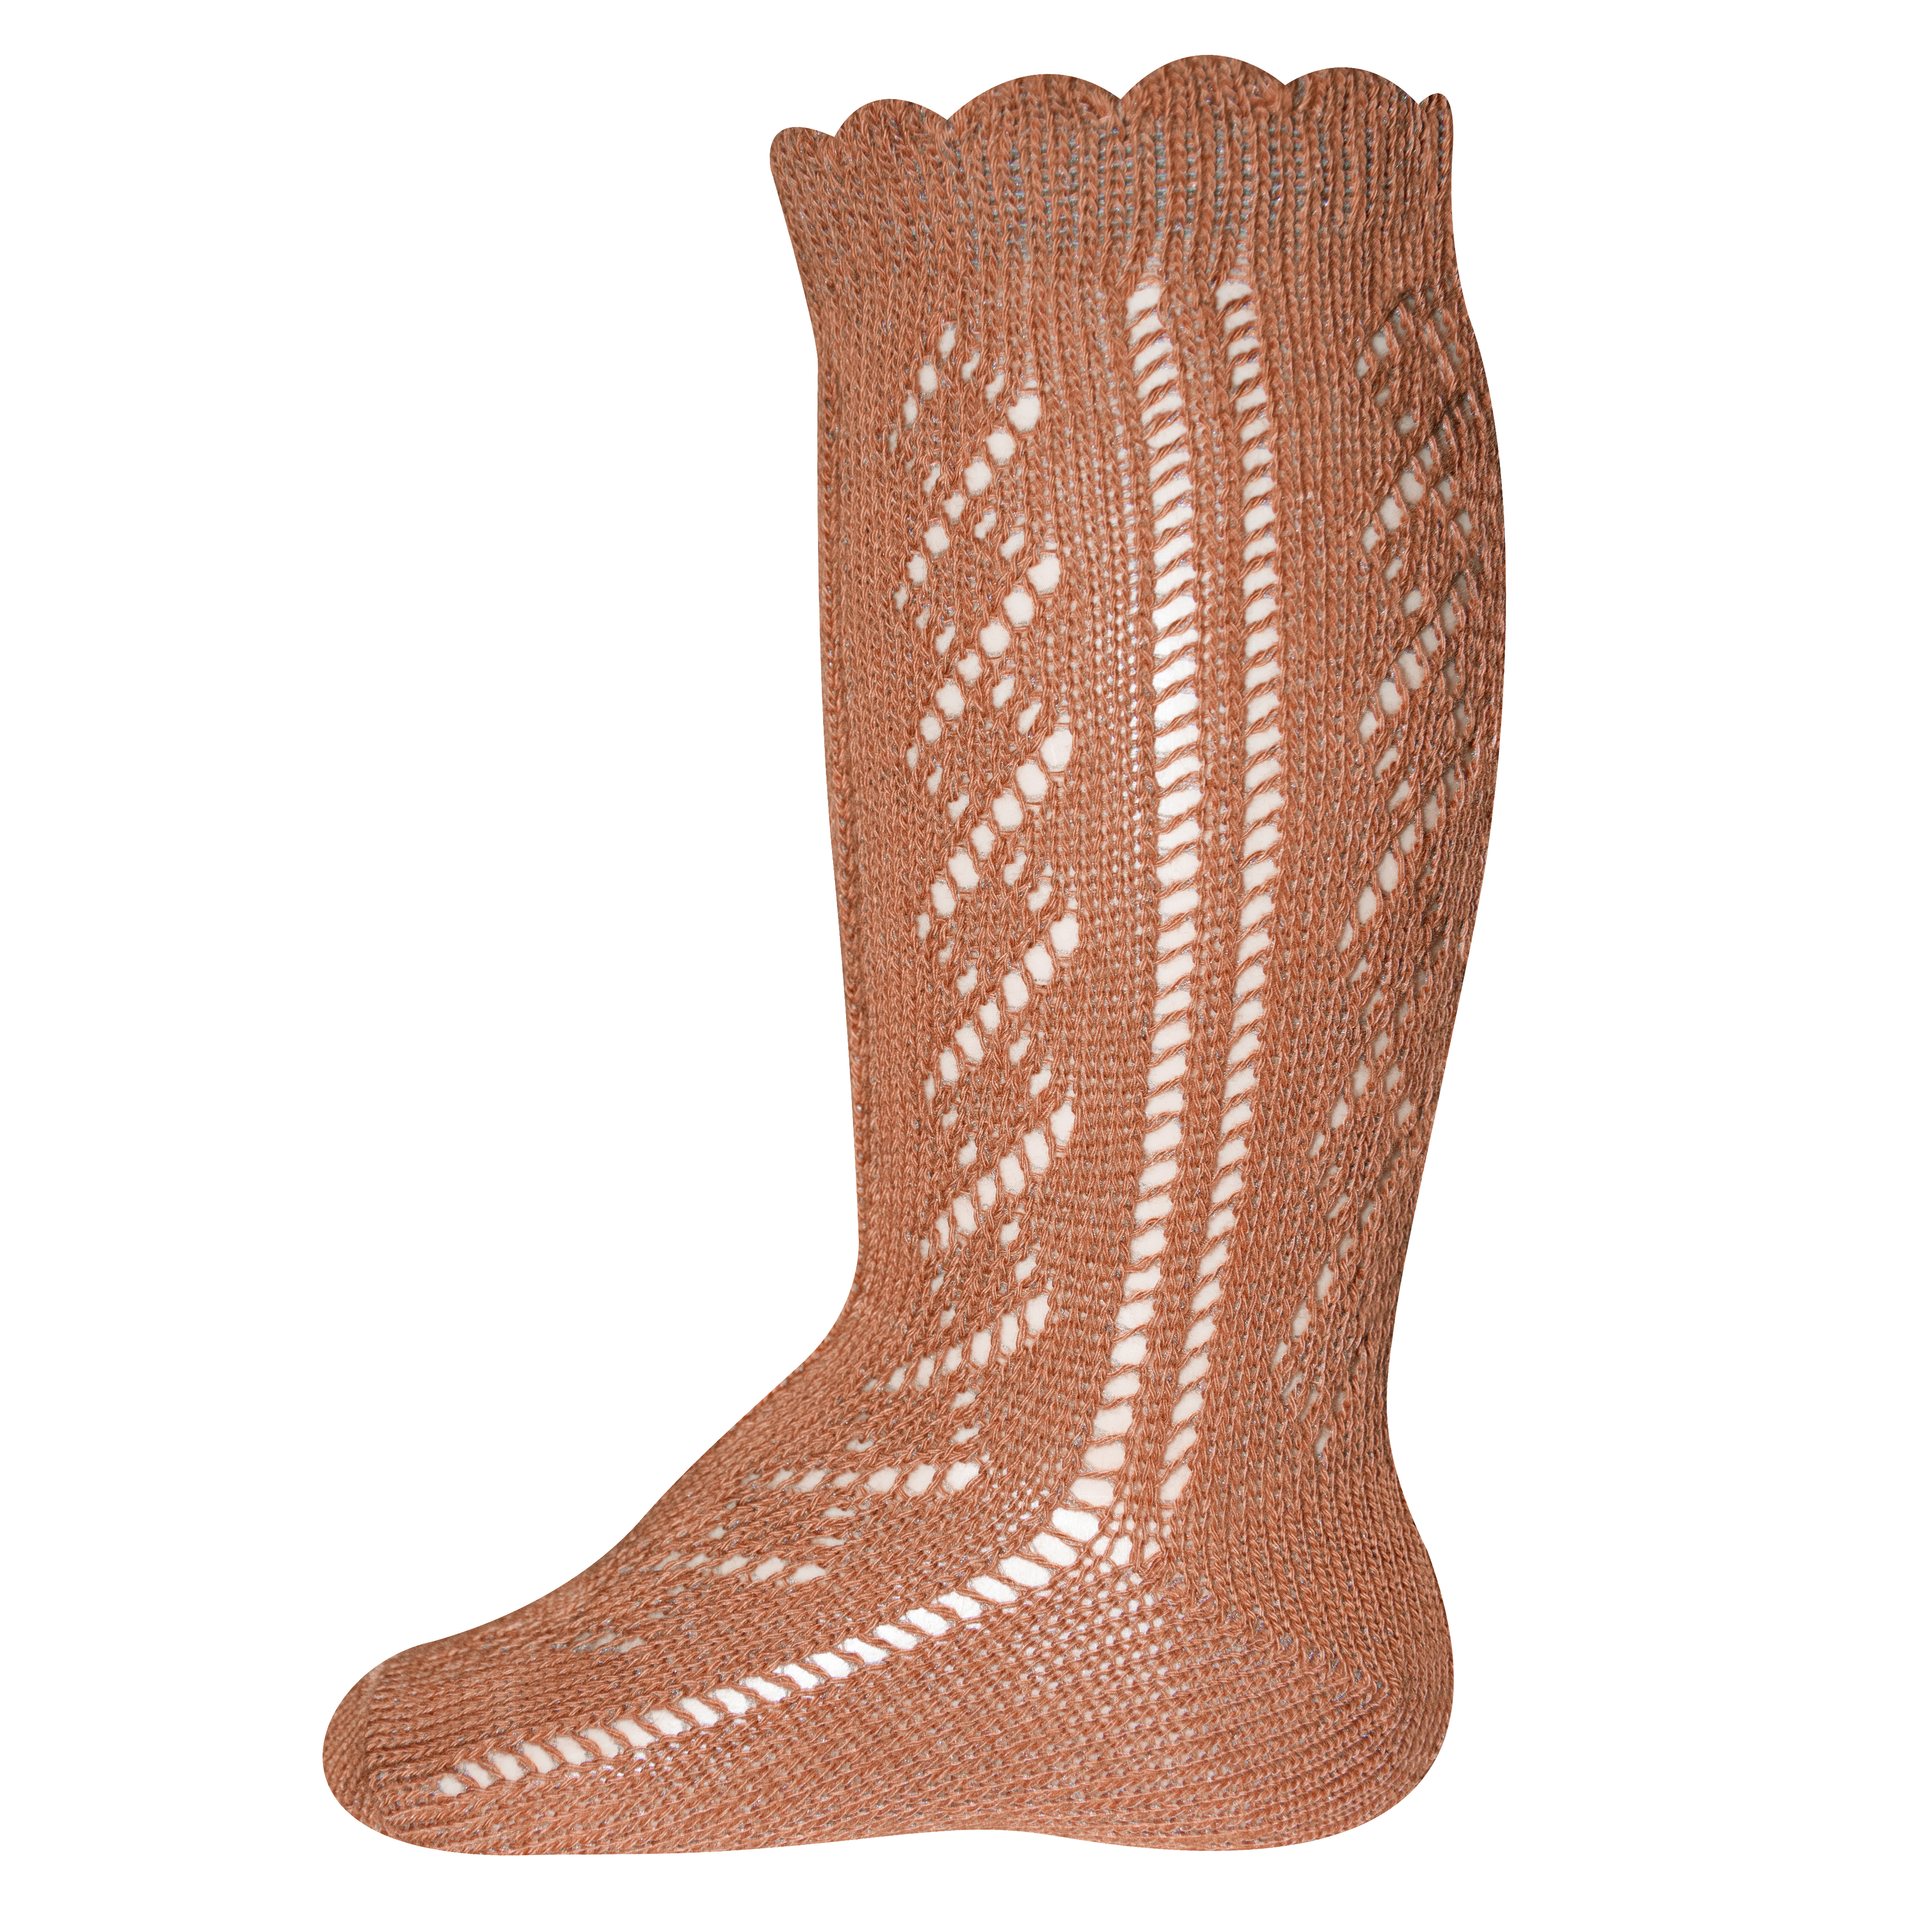 Ewers - Knee High Socks Crochet Lace